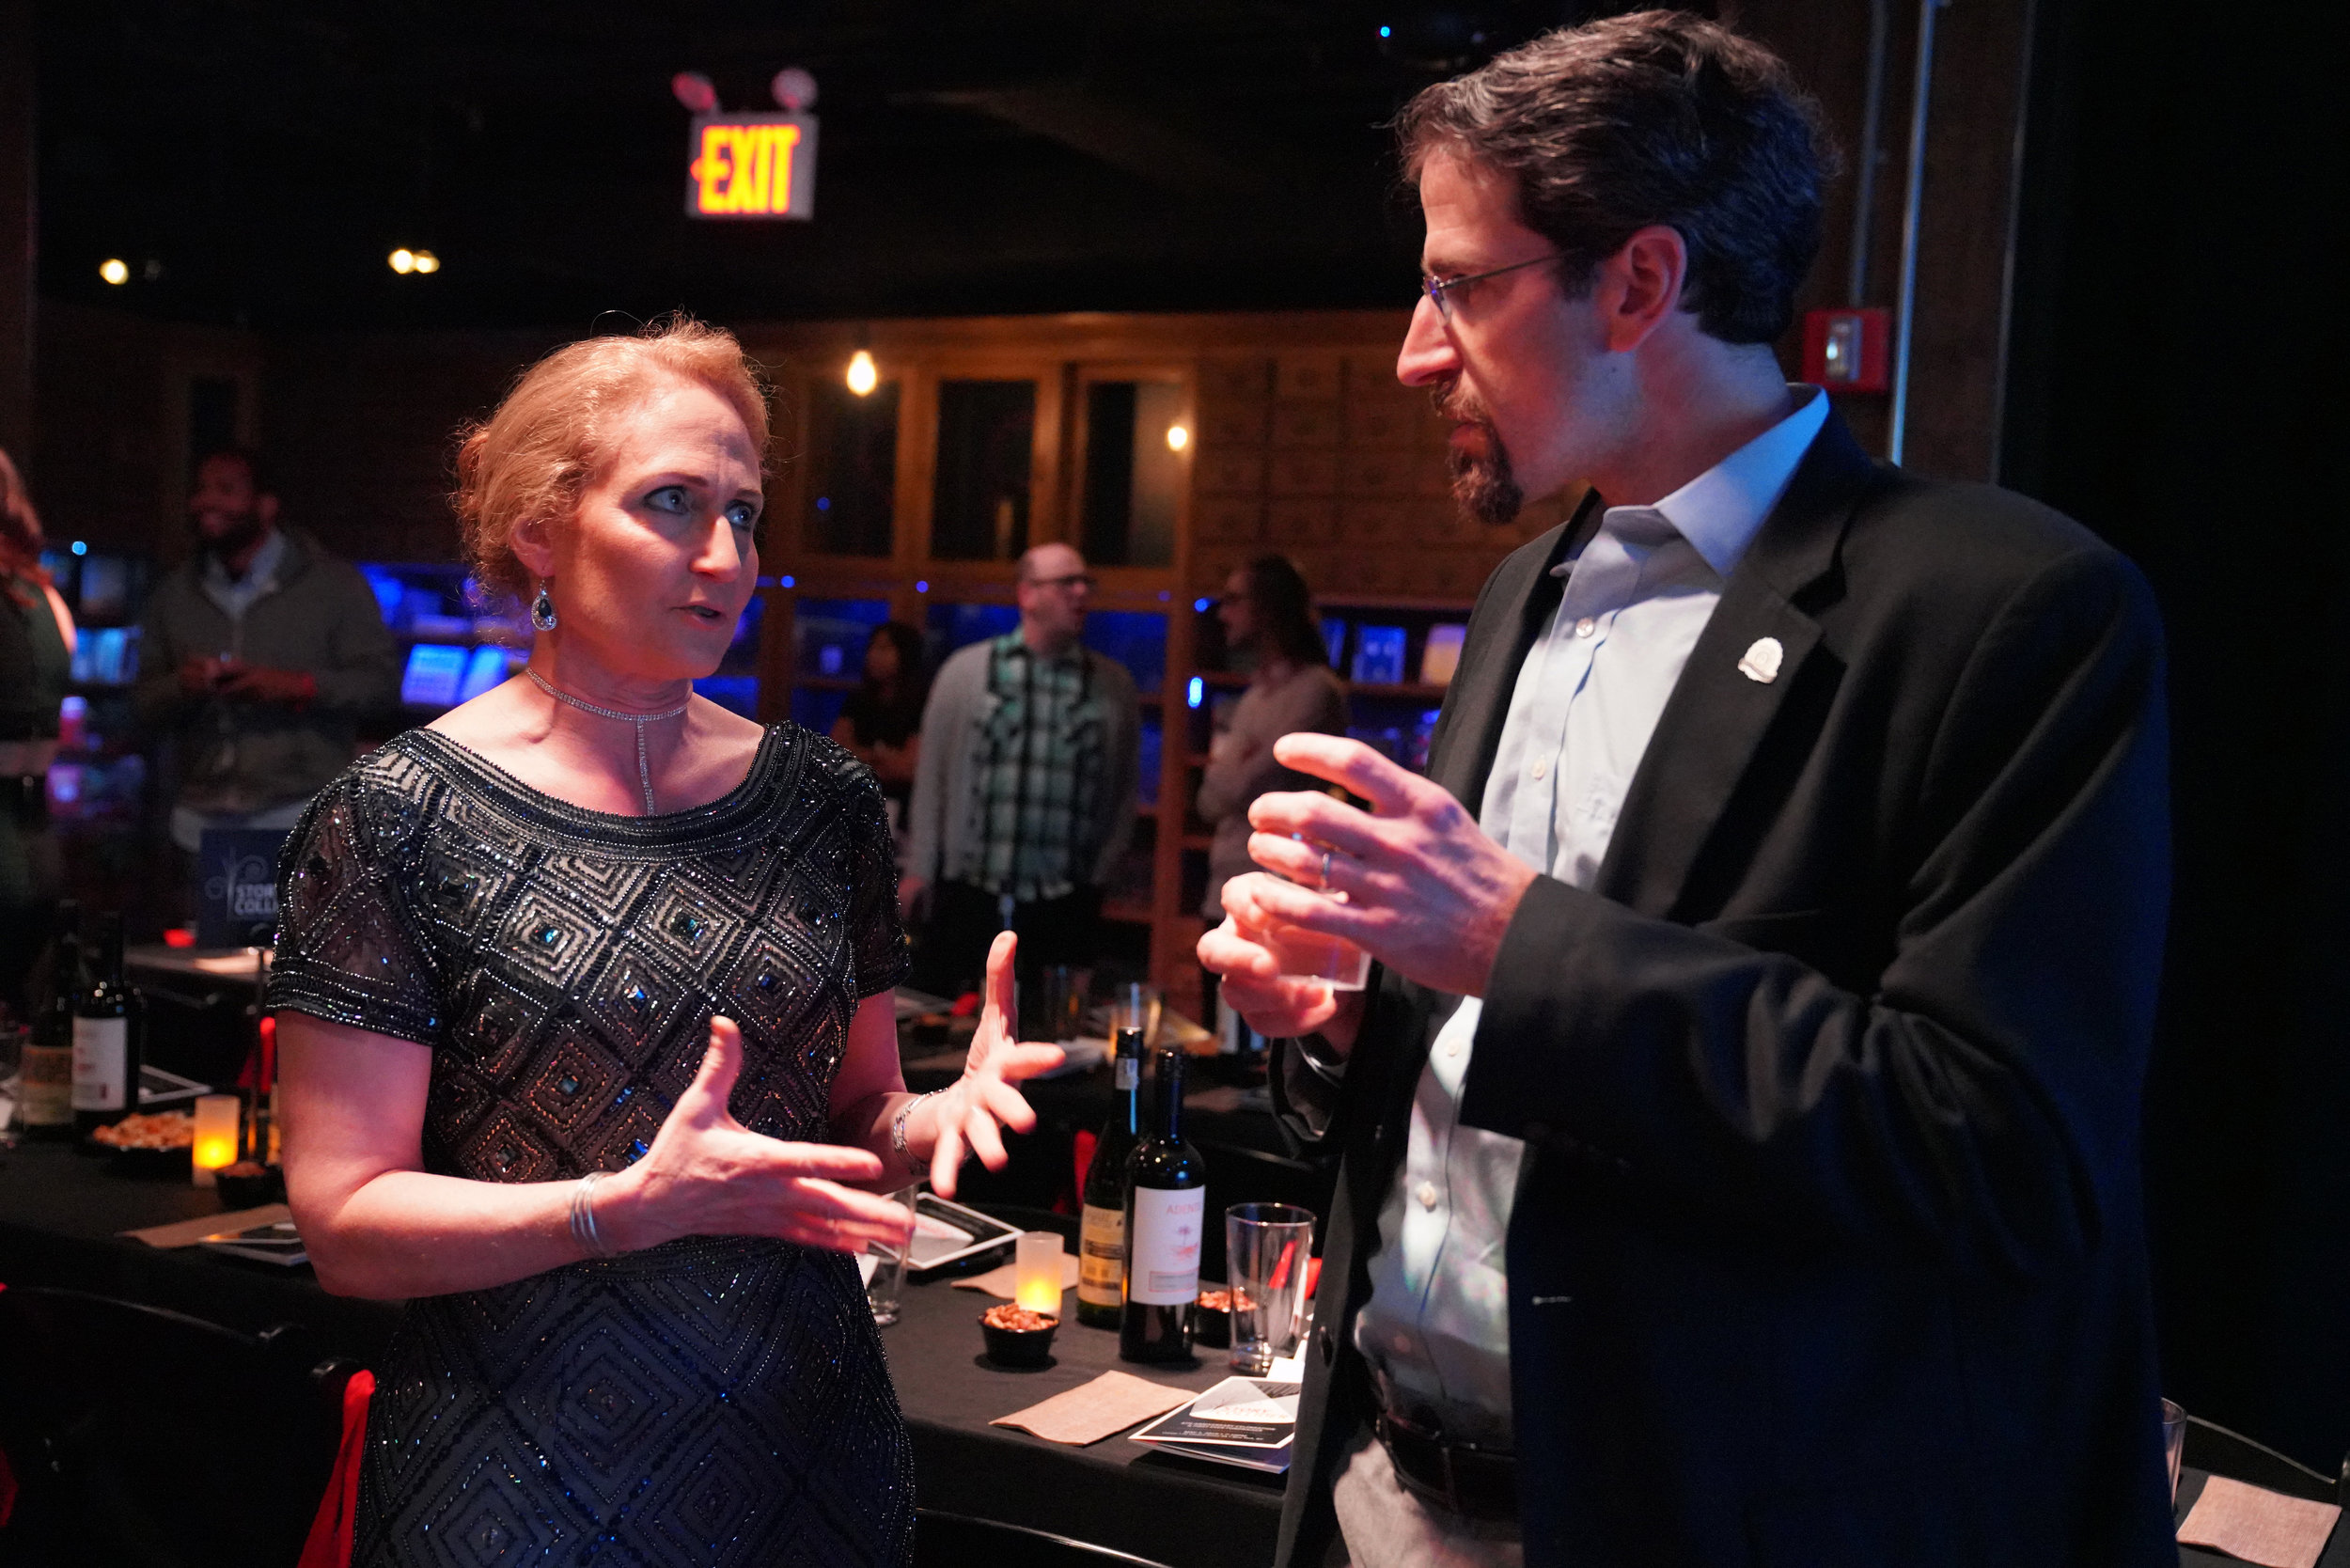 Jo Handelsman, director of the Wisconsin Institute for Discovery at UW-Madison and our third storyteller of the night, chats with her former colleague, Yale psychiatrist David Ross, also a Story Collider partner and donor.